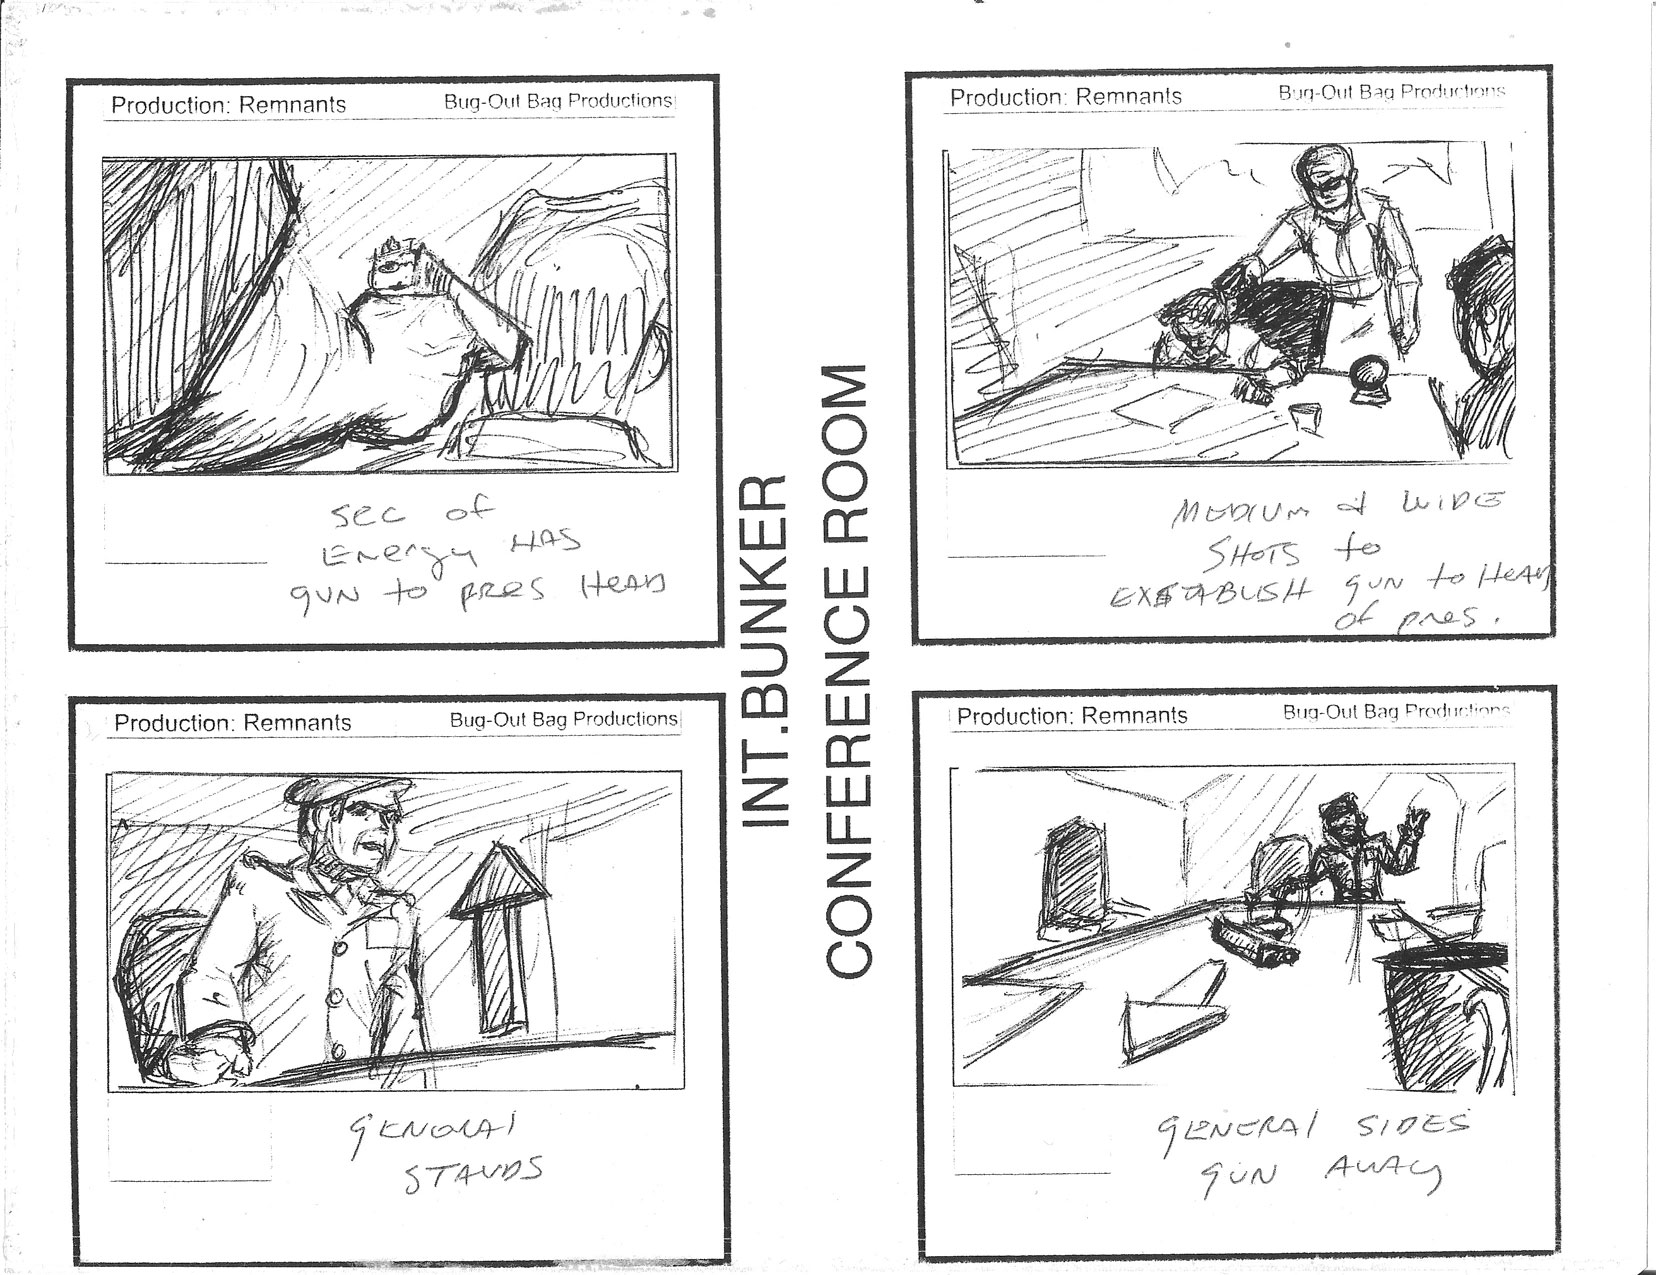 Remnants_storyboards_057.jpg